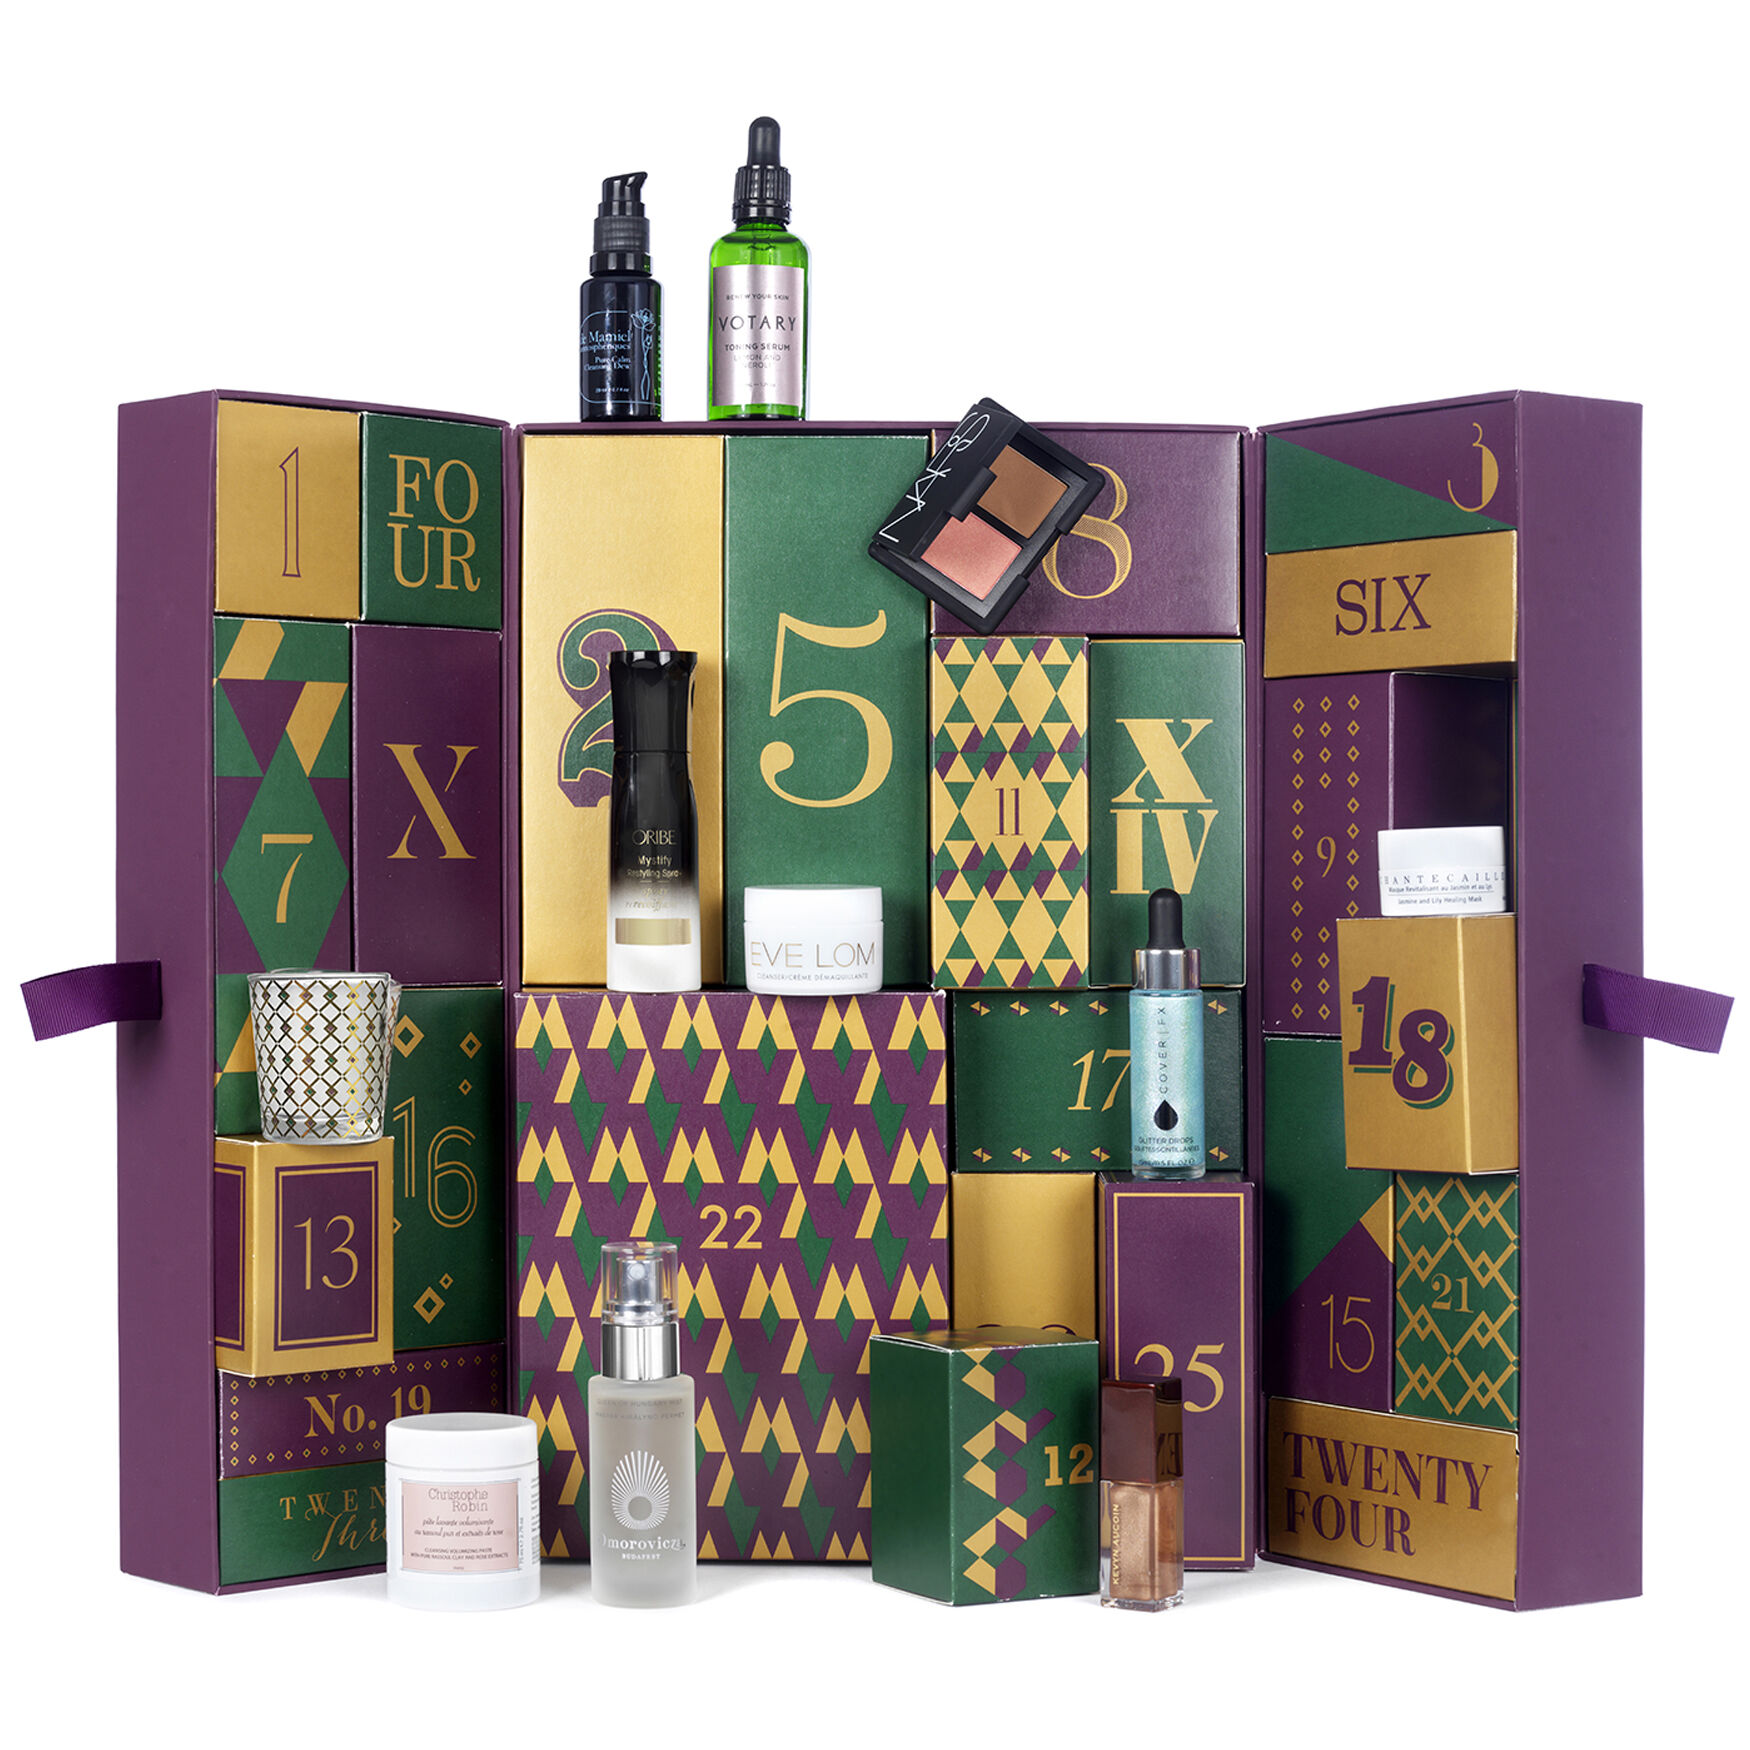 Top gifts for mom this christmas 2019 advent